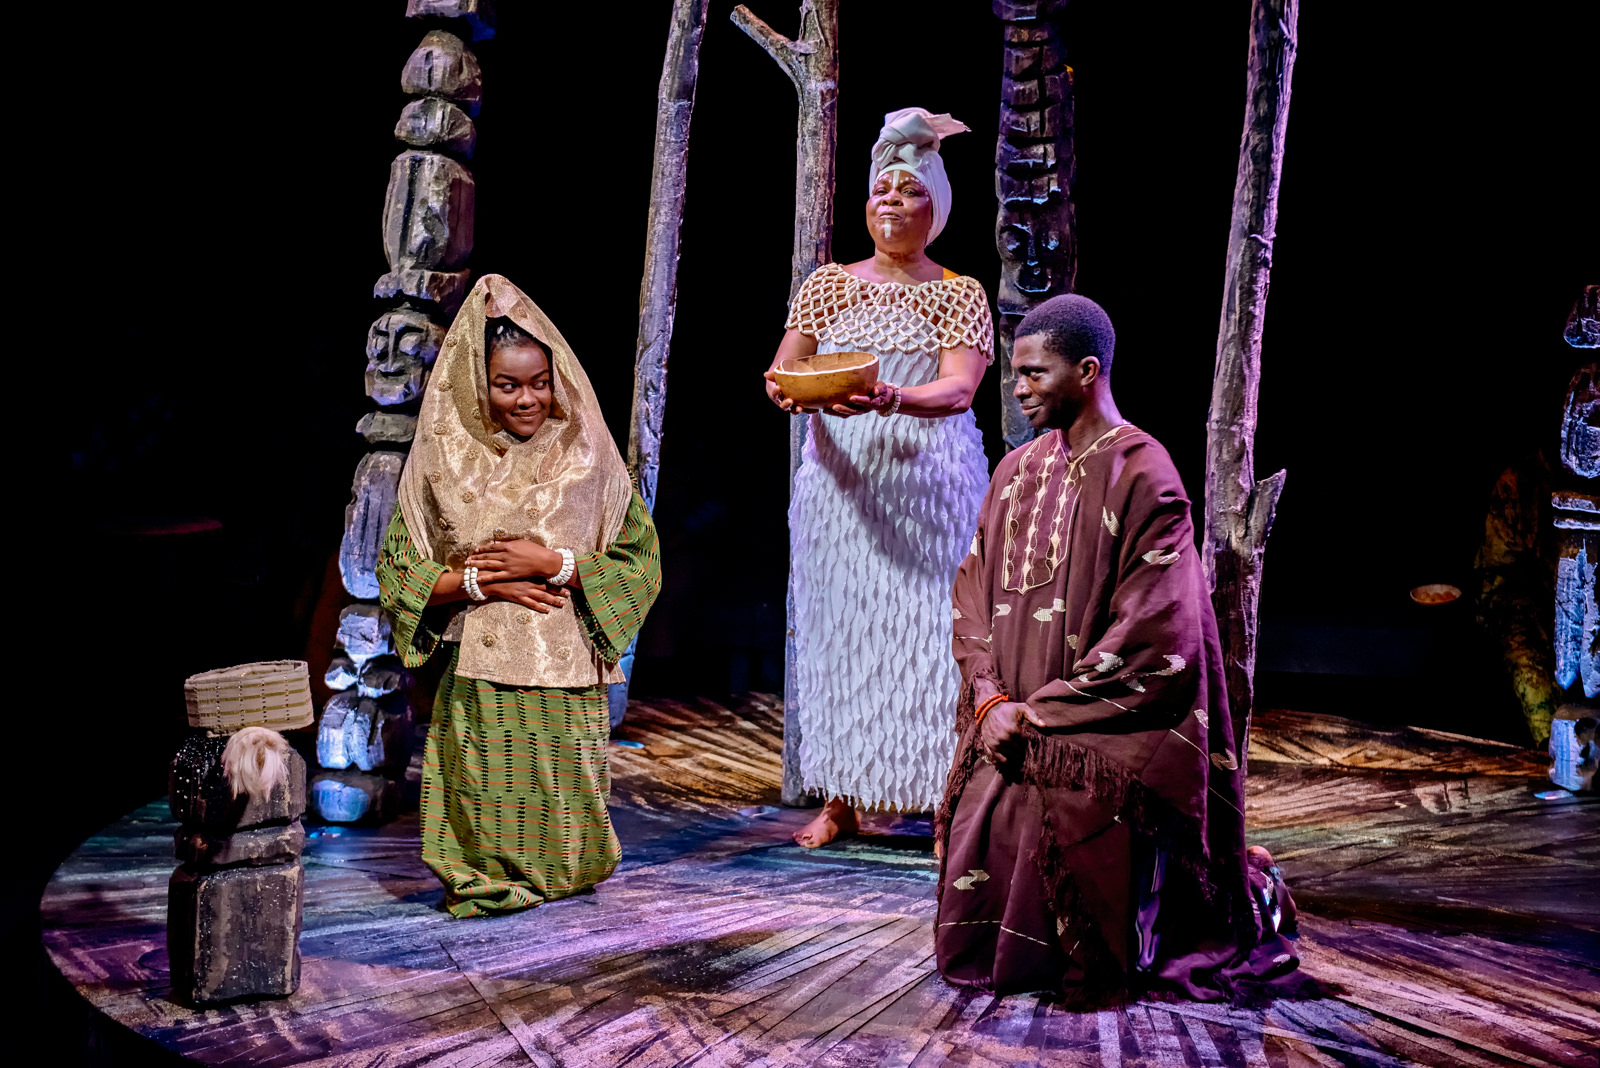 The Duchess Of Malfi (Iyalode of Eti) - A unique West African transposition of one of the greatest dramas ever written, John Webster's The Duchess of Malfi.The recently widowed Iyalode, a young, beautiful chief longs to marry her low-born lover, Oguntade. Her brothers vehemently forbid it, but Iyalode secretly marries and gives birth. If the brothers discover the deceit, a trail or torture, torment, betrayal and murder could follow…